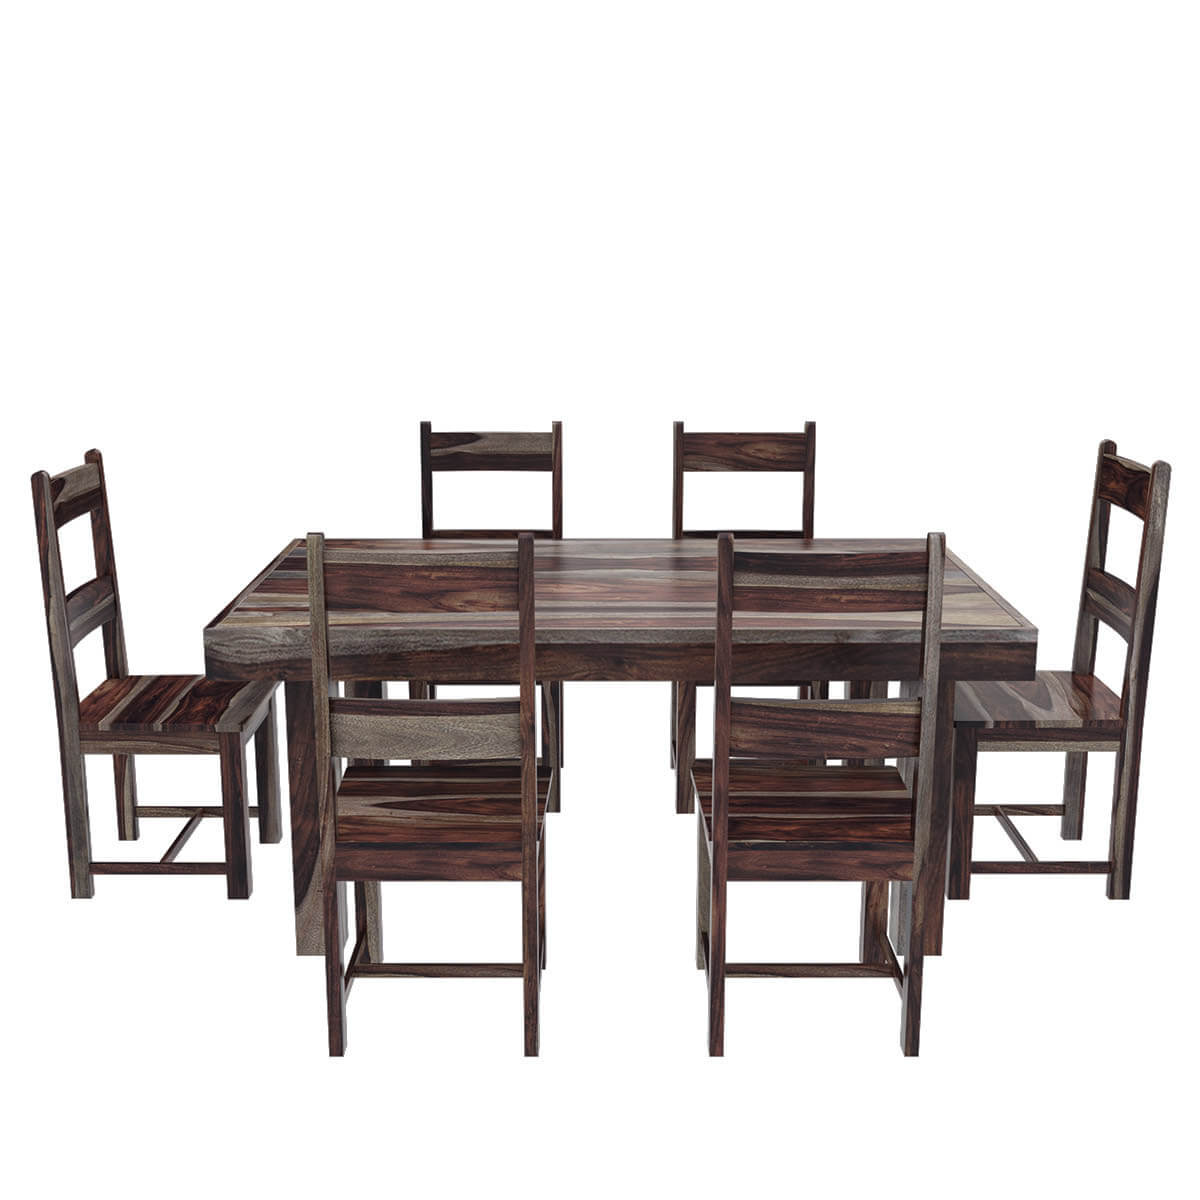 Dining Room Sets Wood: Frisco Modern Solid Wood Casual Rustic Dining Room Table